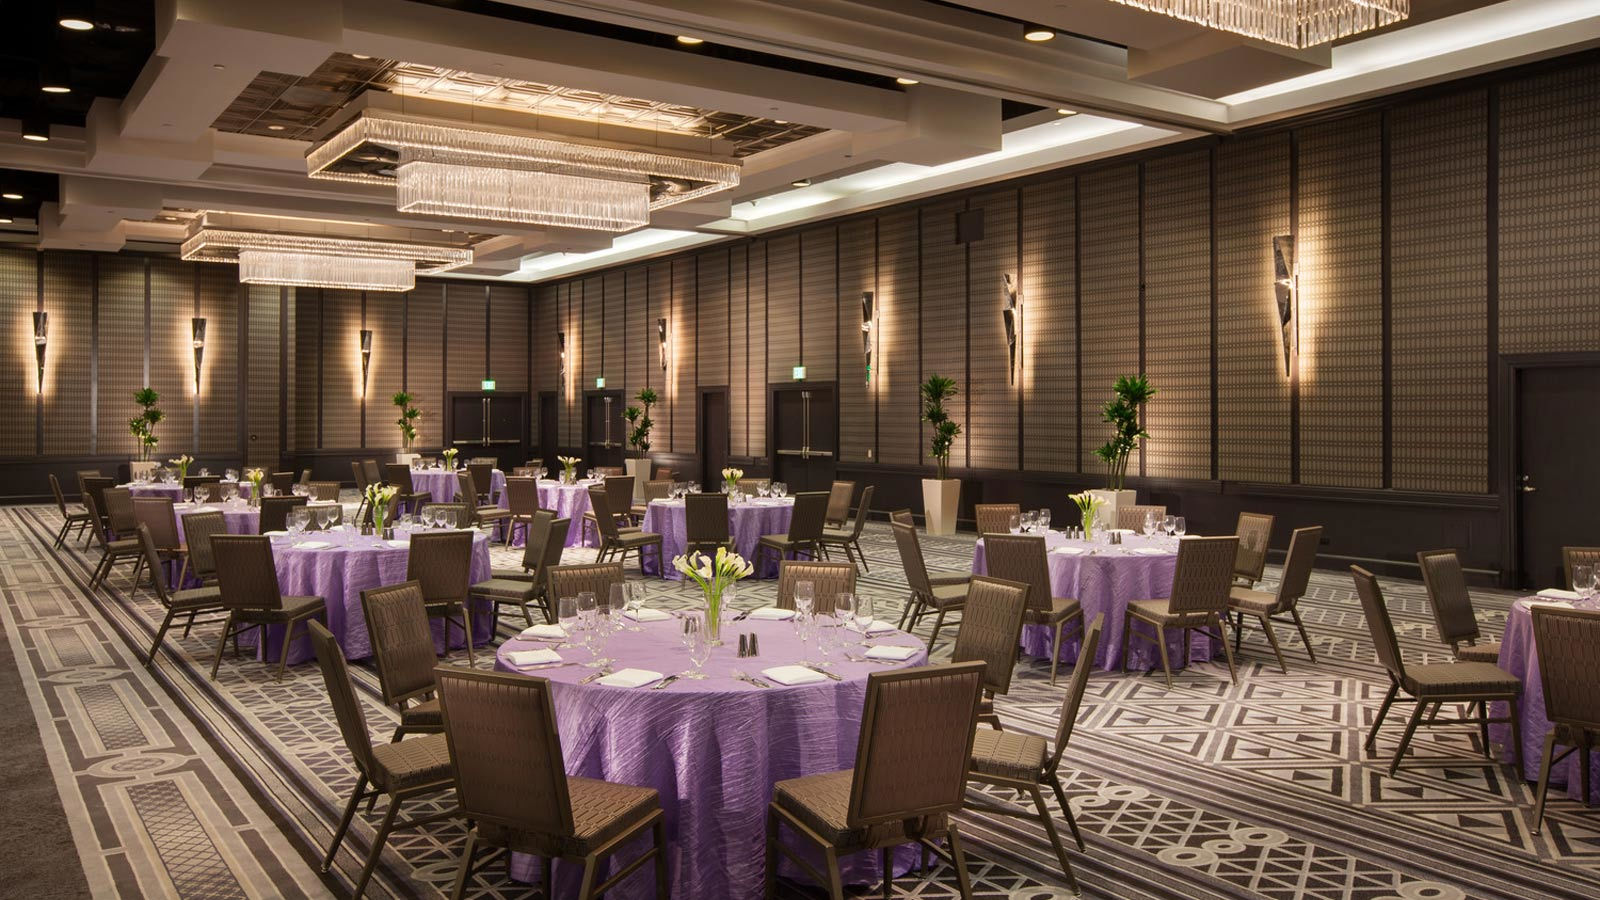 Los Angeles Meetings & Events - California Ballroom Social